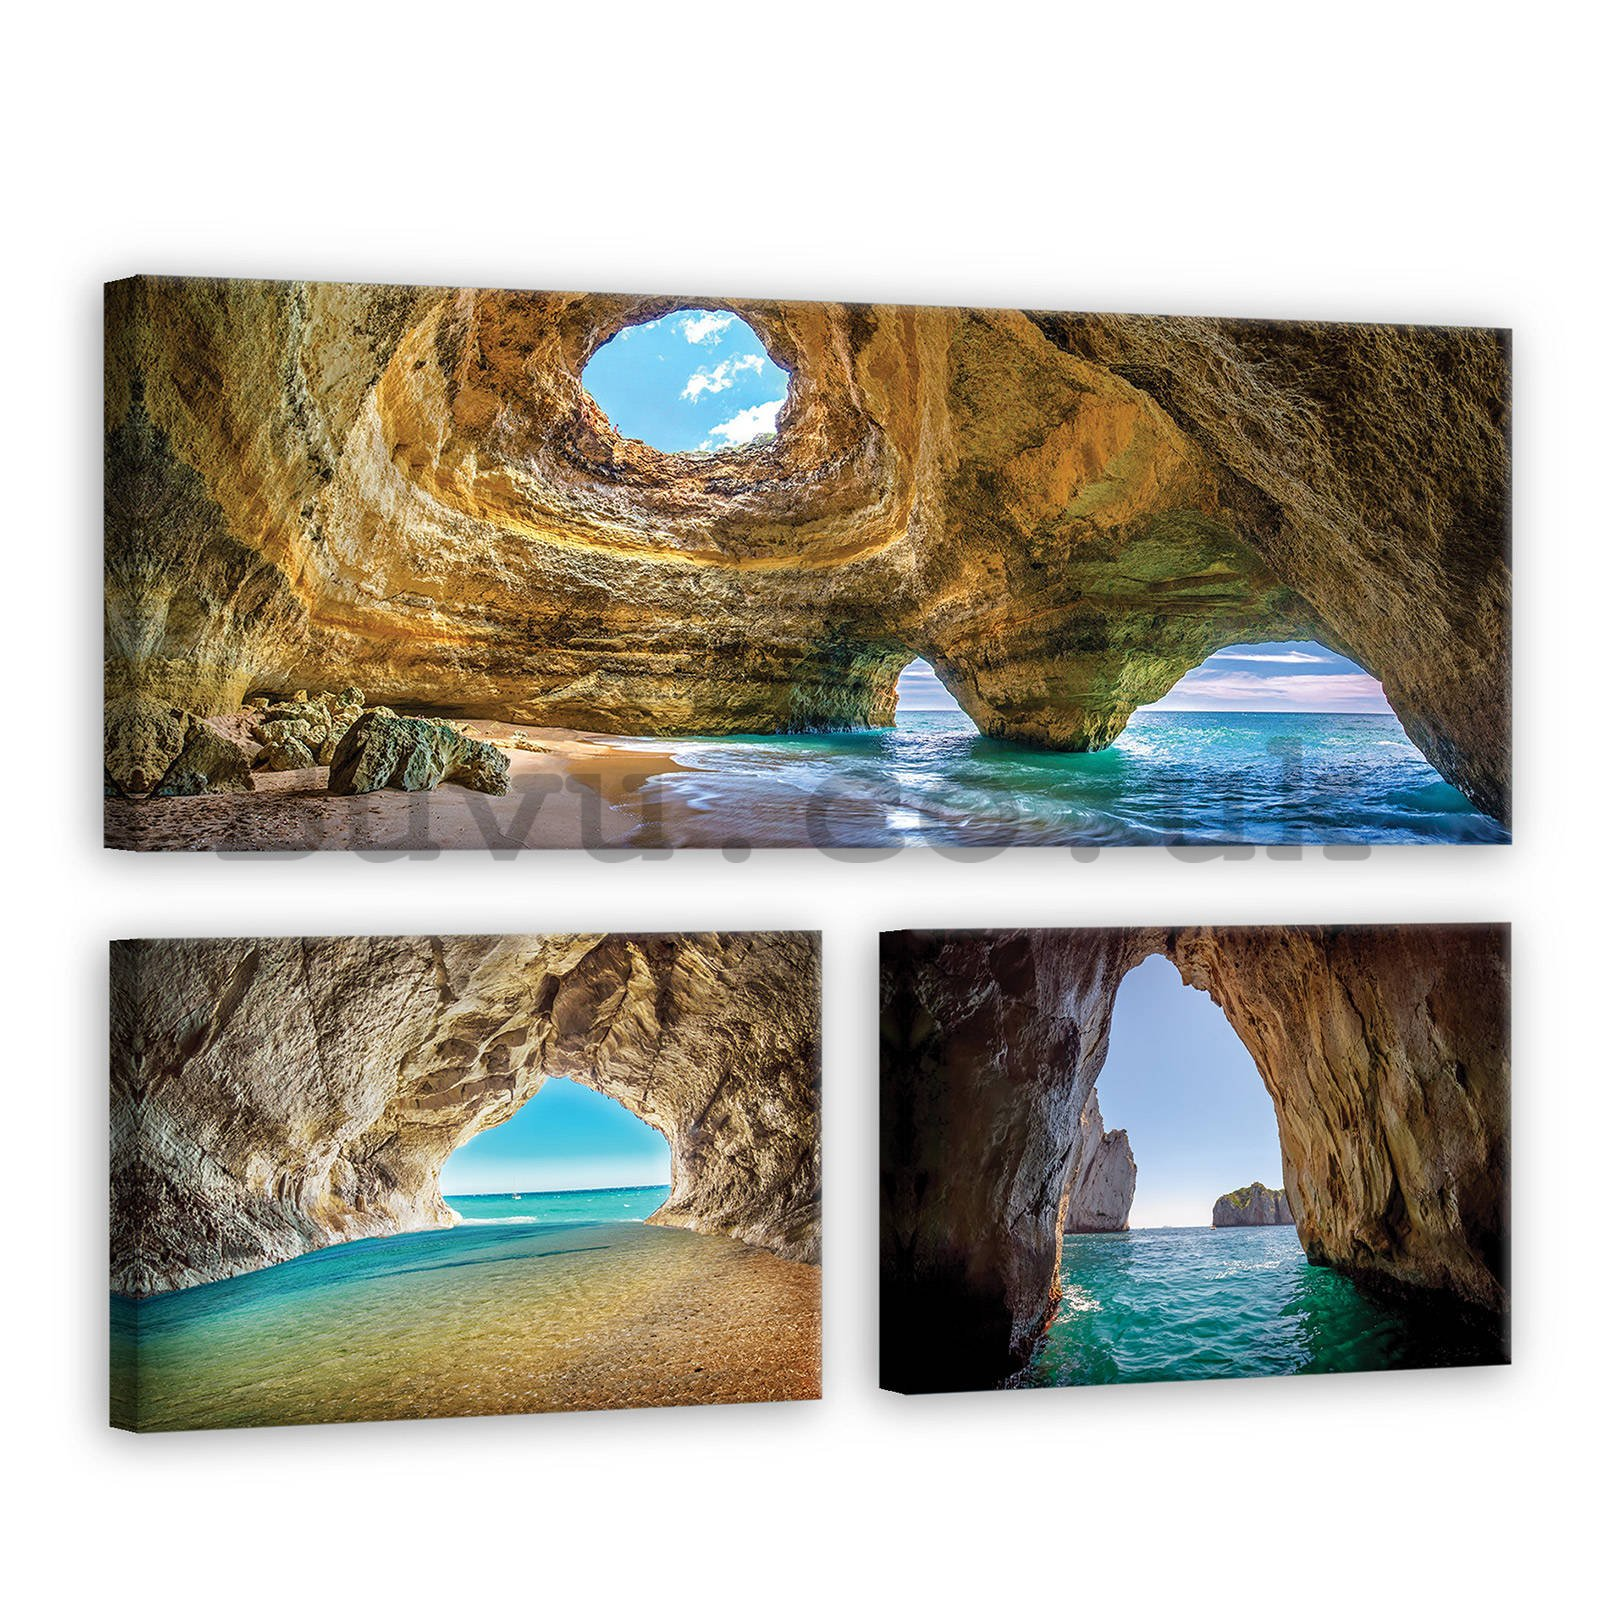 Painting on canvas: Sea cave - set 1pc 80x30 cm and 2pc 37,5x24,8 cm